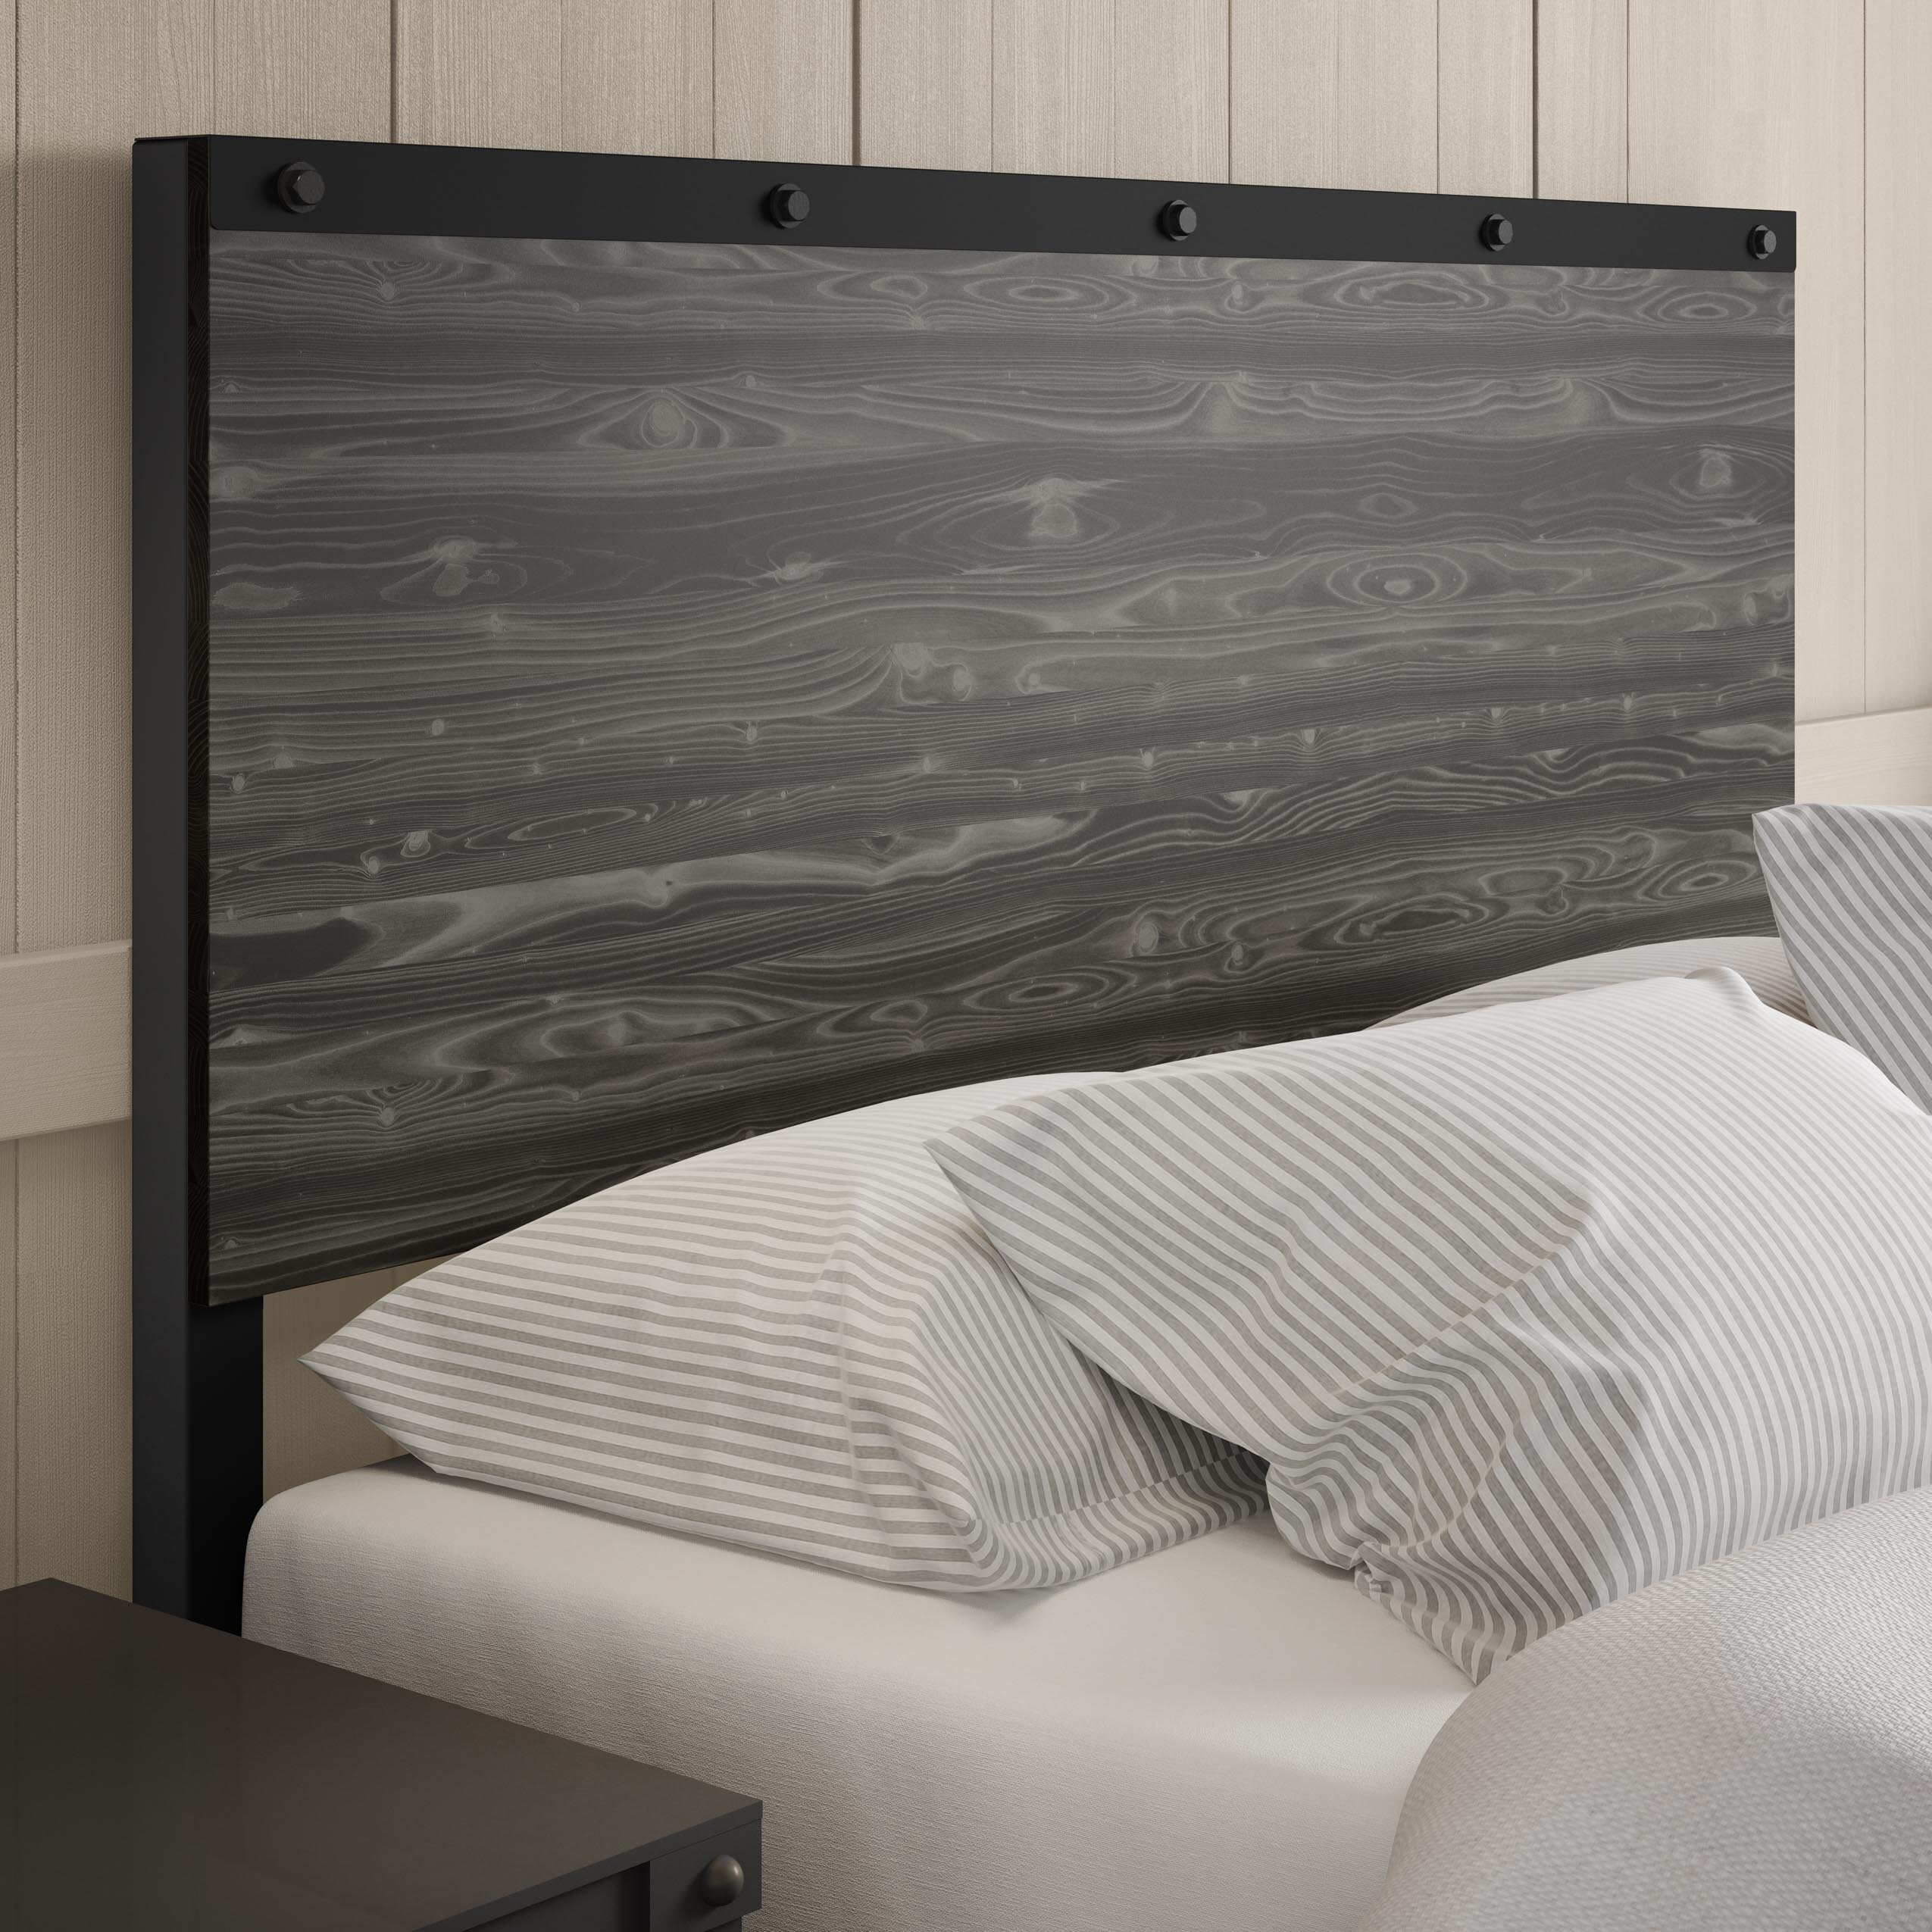 north furniture headboard gray custom rustic shore from style headboards herringbone bed pin co cottage vancouver